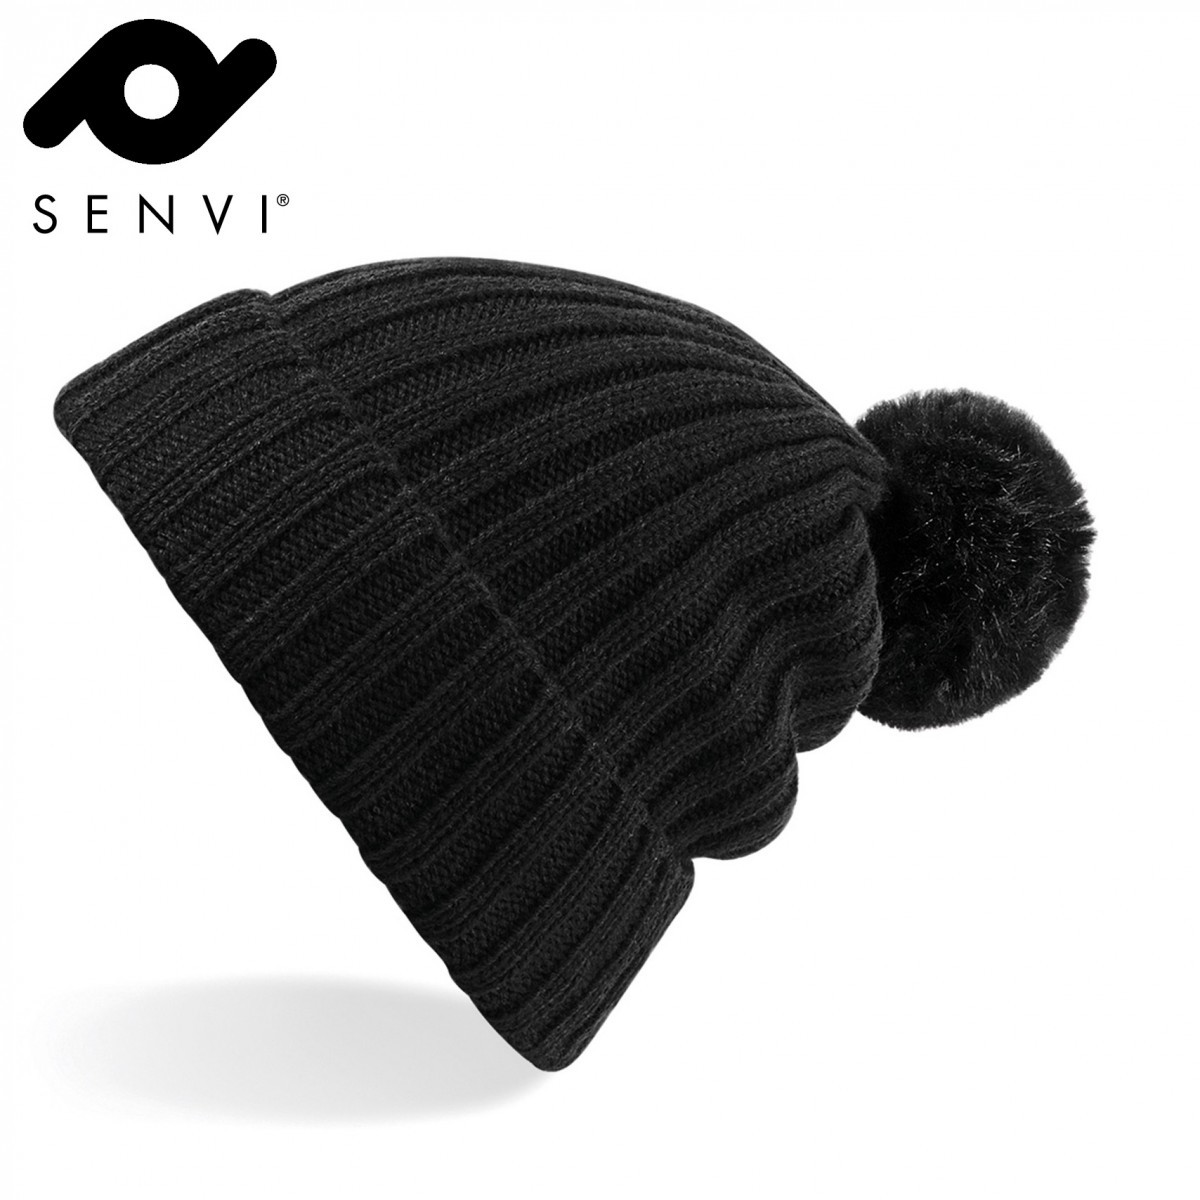 Senvi Arosa Fur Pom Pom Beanie Zwart (One size fits all)